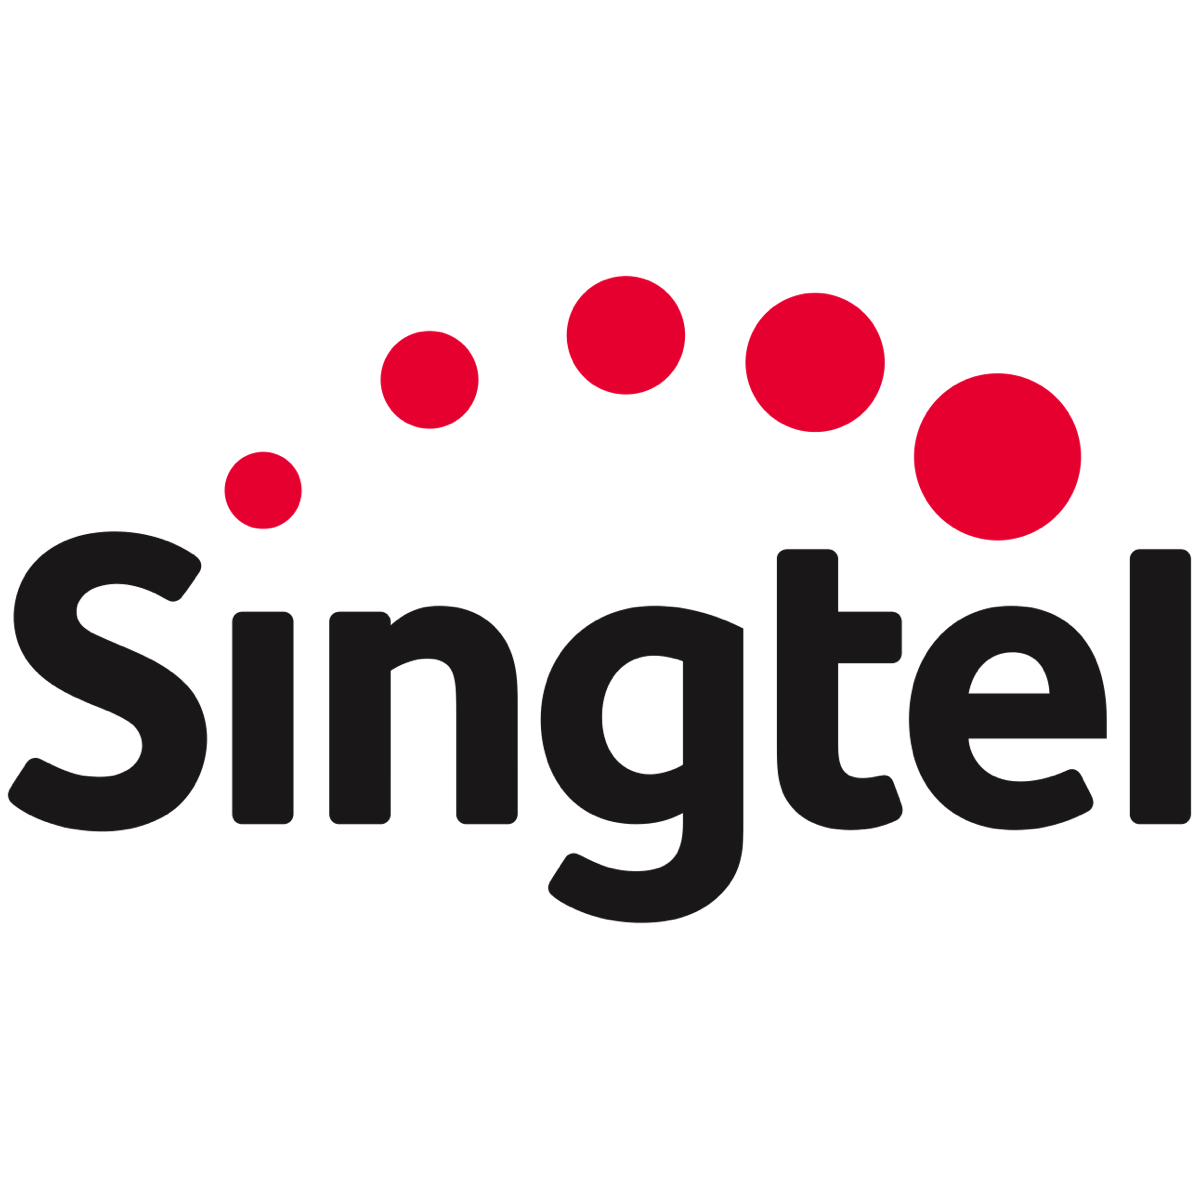 Singtel - OCBC Investment 2018-05-18: Keep Calm And Collect Dividends